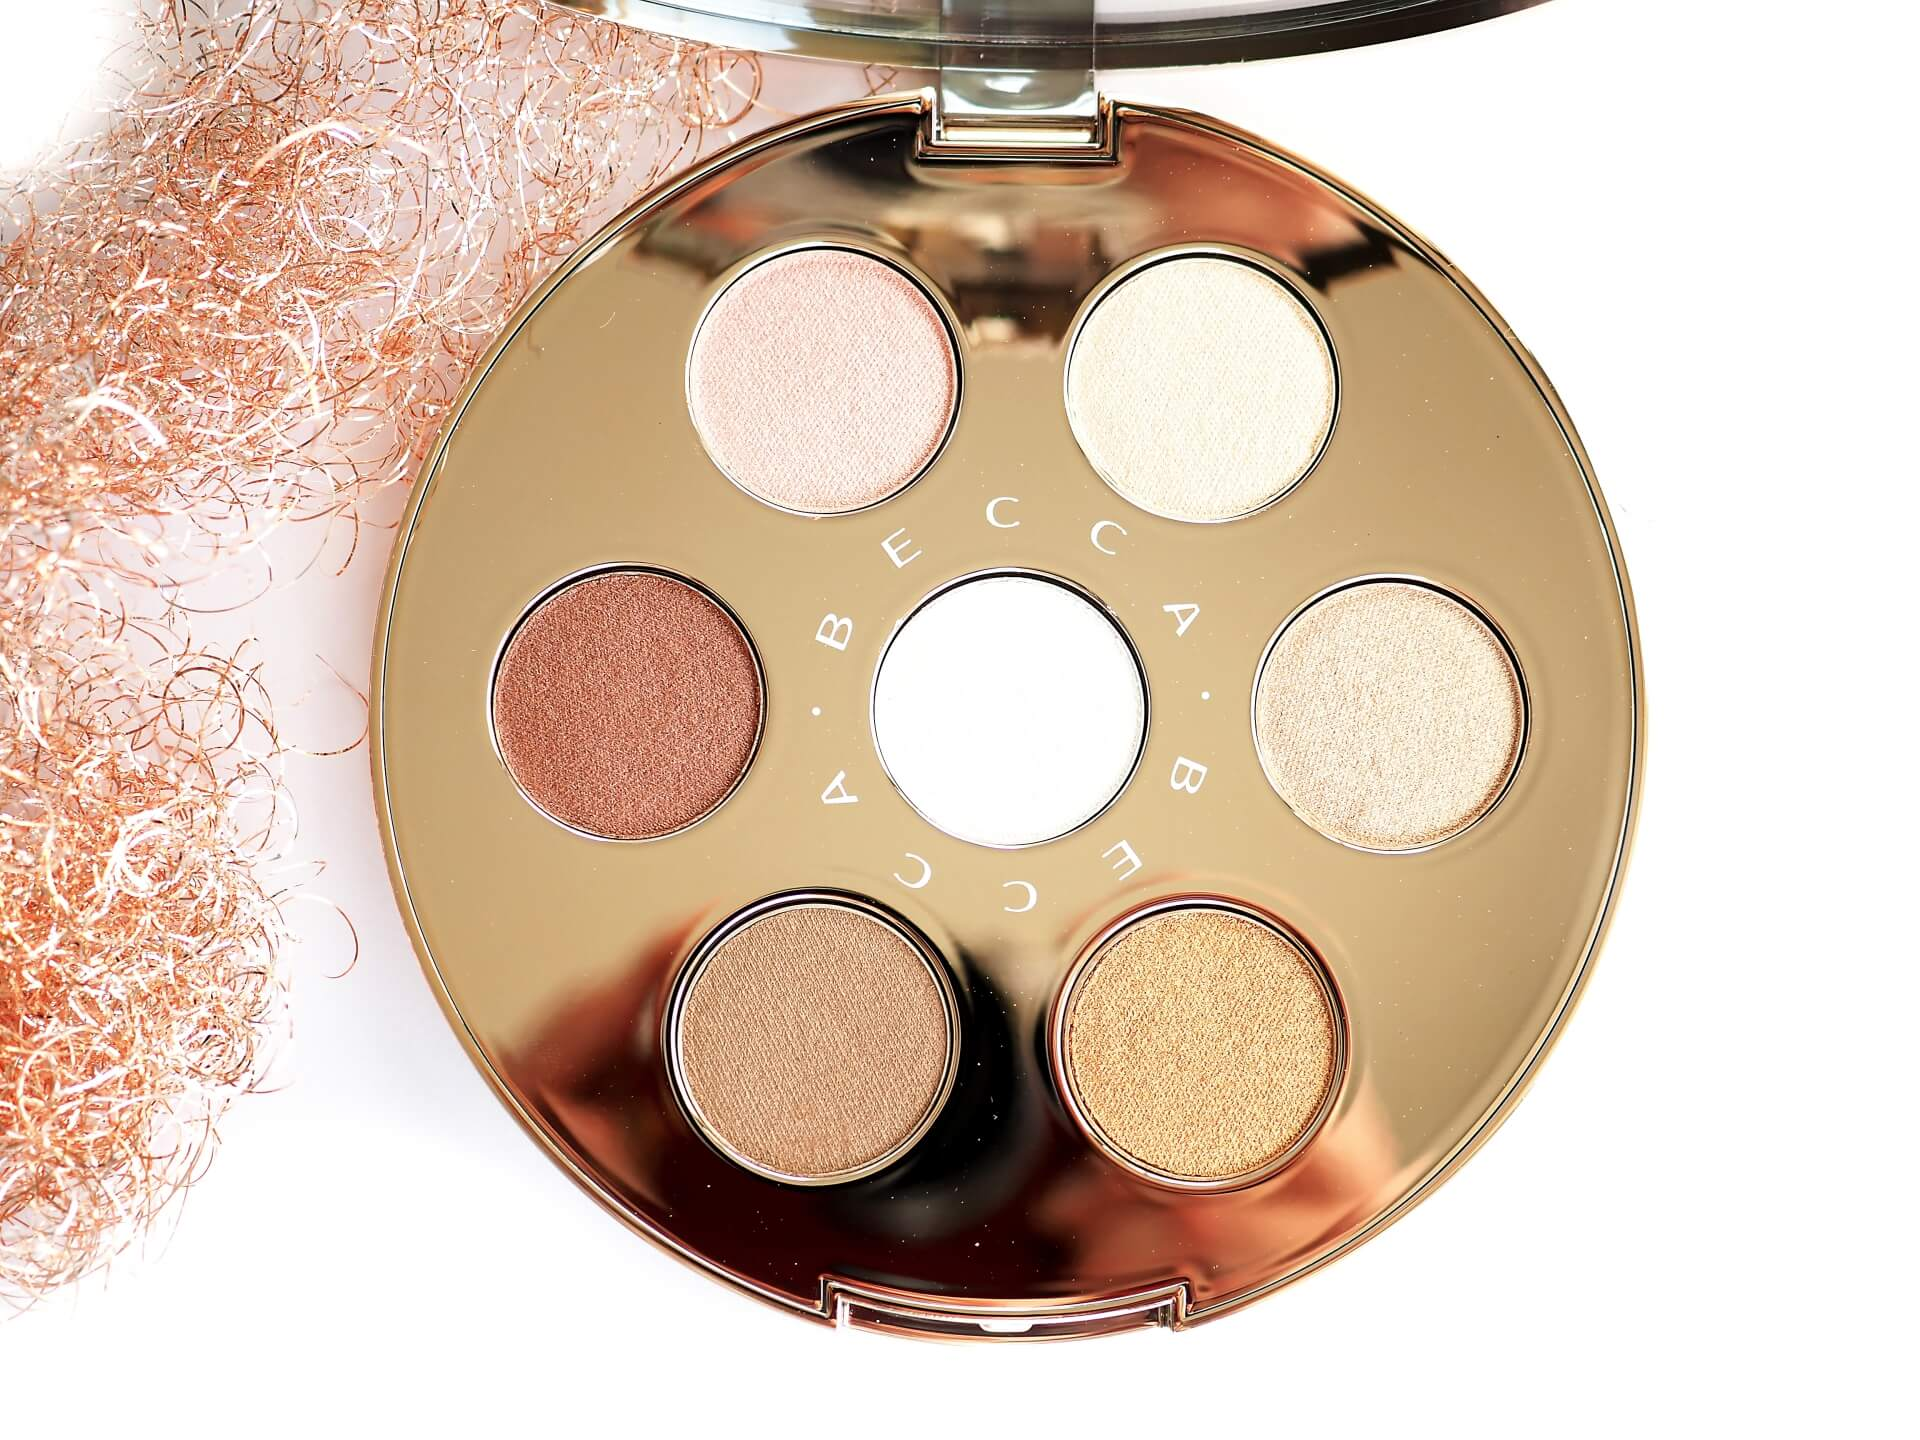 recenzja Becca Eye Light Palette Apres Ski Glow Collection